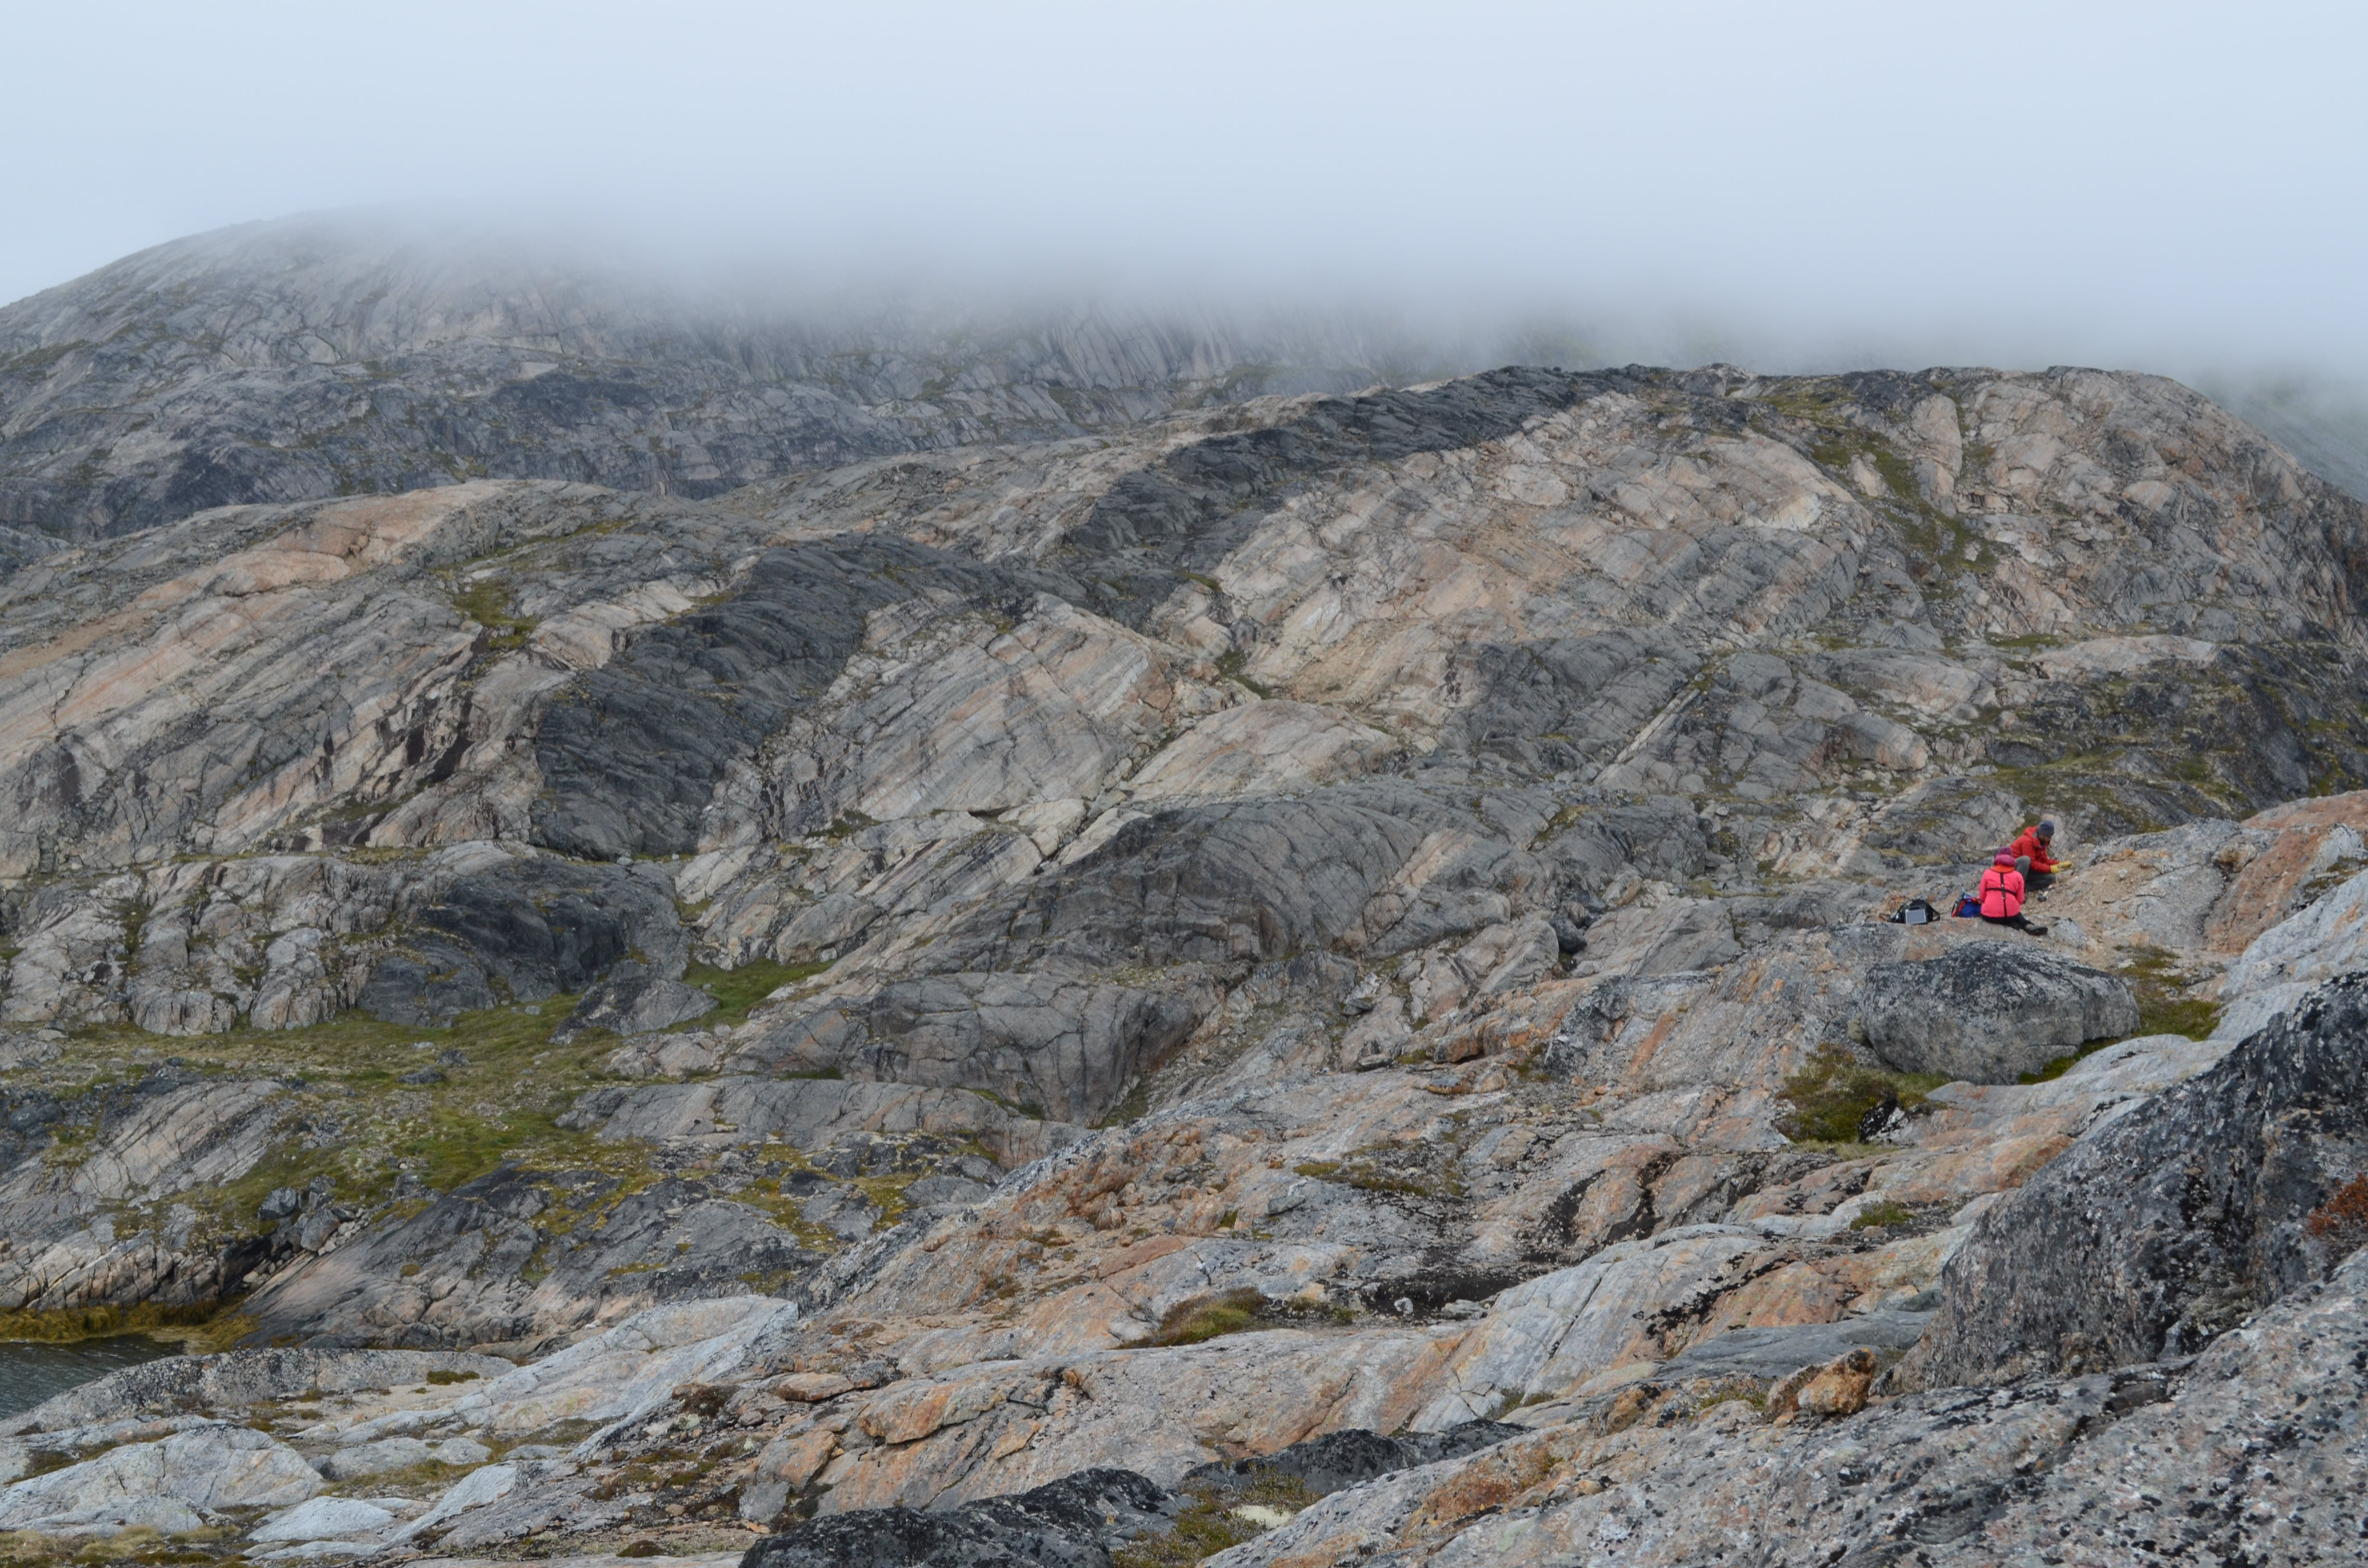 Geologists working in the Maniitsoq area, collecting samples.